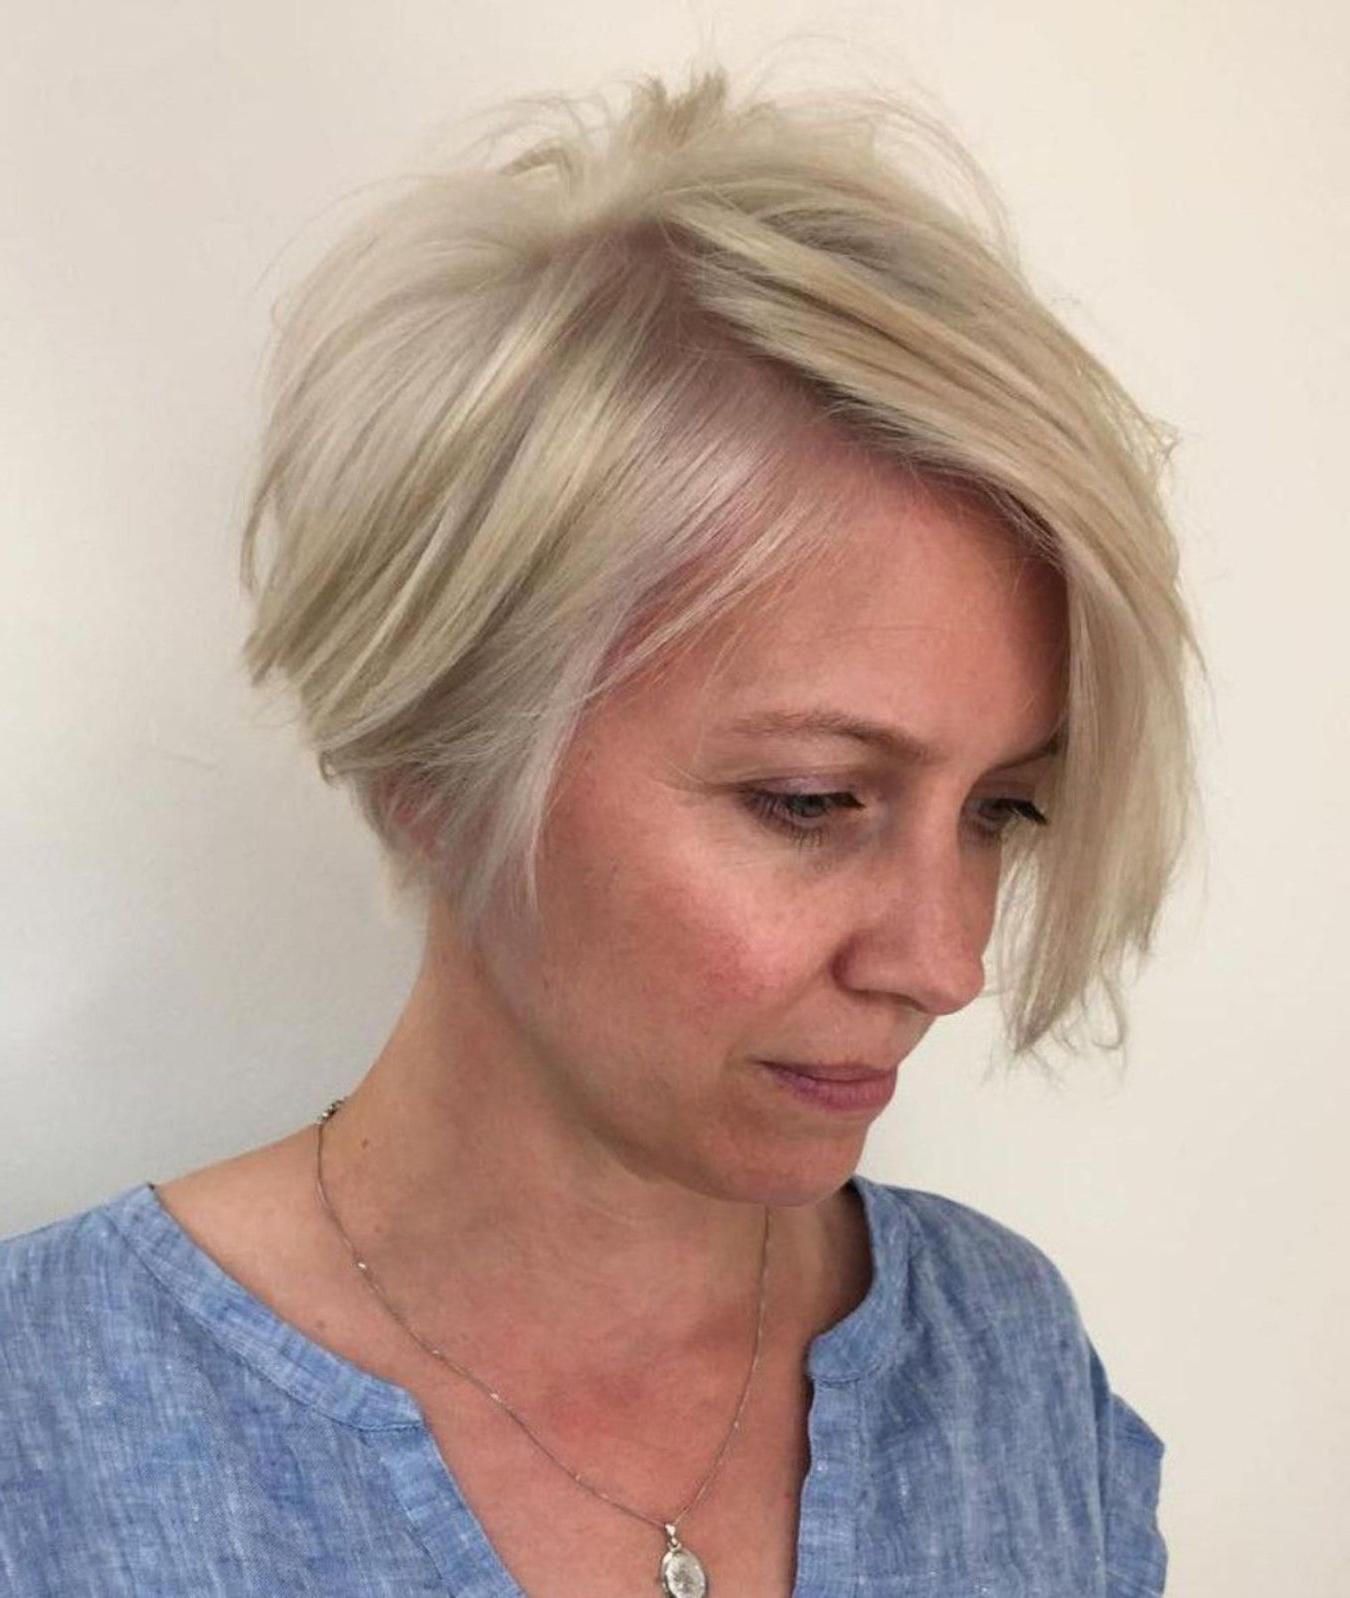 Most Current Razored Blonde Bob Haircuts With Bangs For Hairstyles : Razored Blonde Bob Delightful 60 Beautiful And (View 17 of 20)